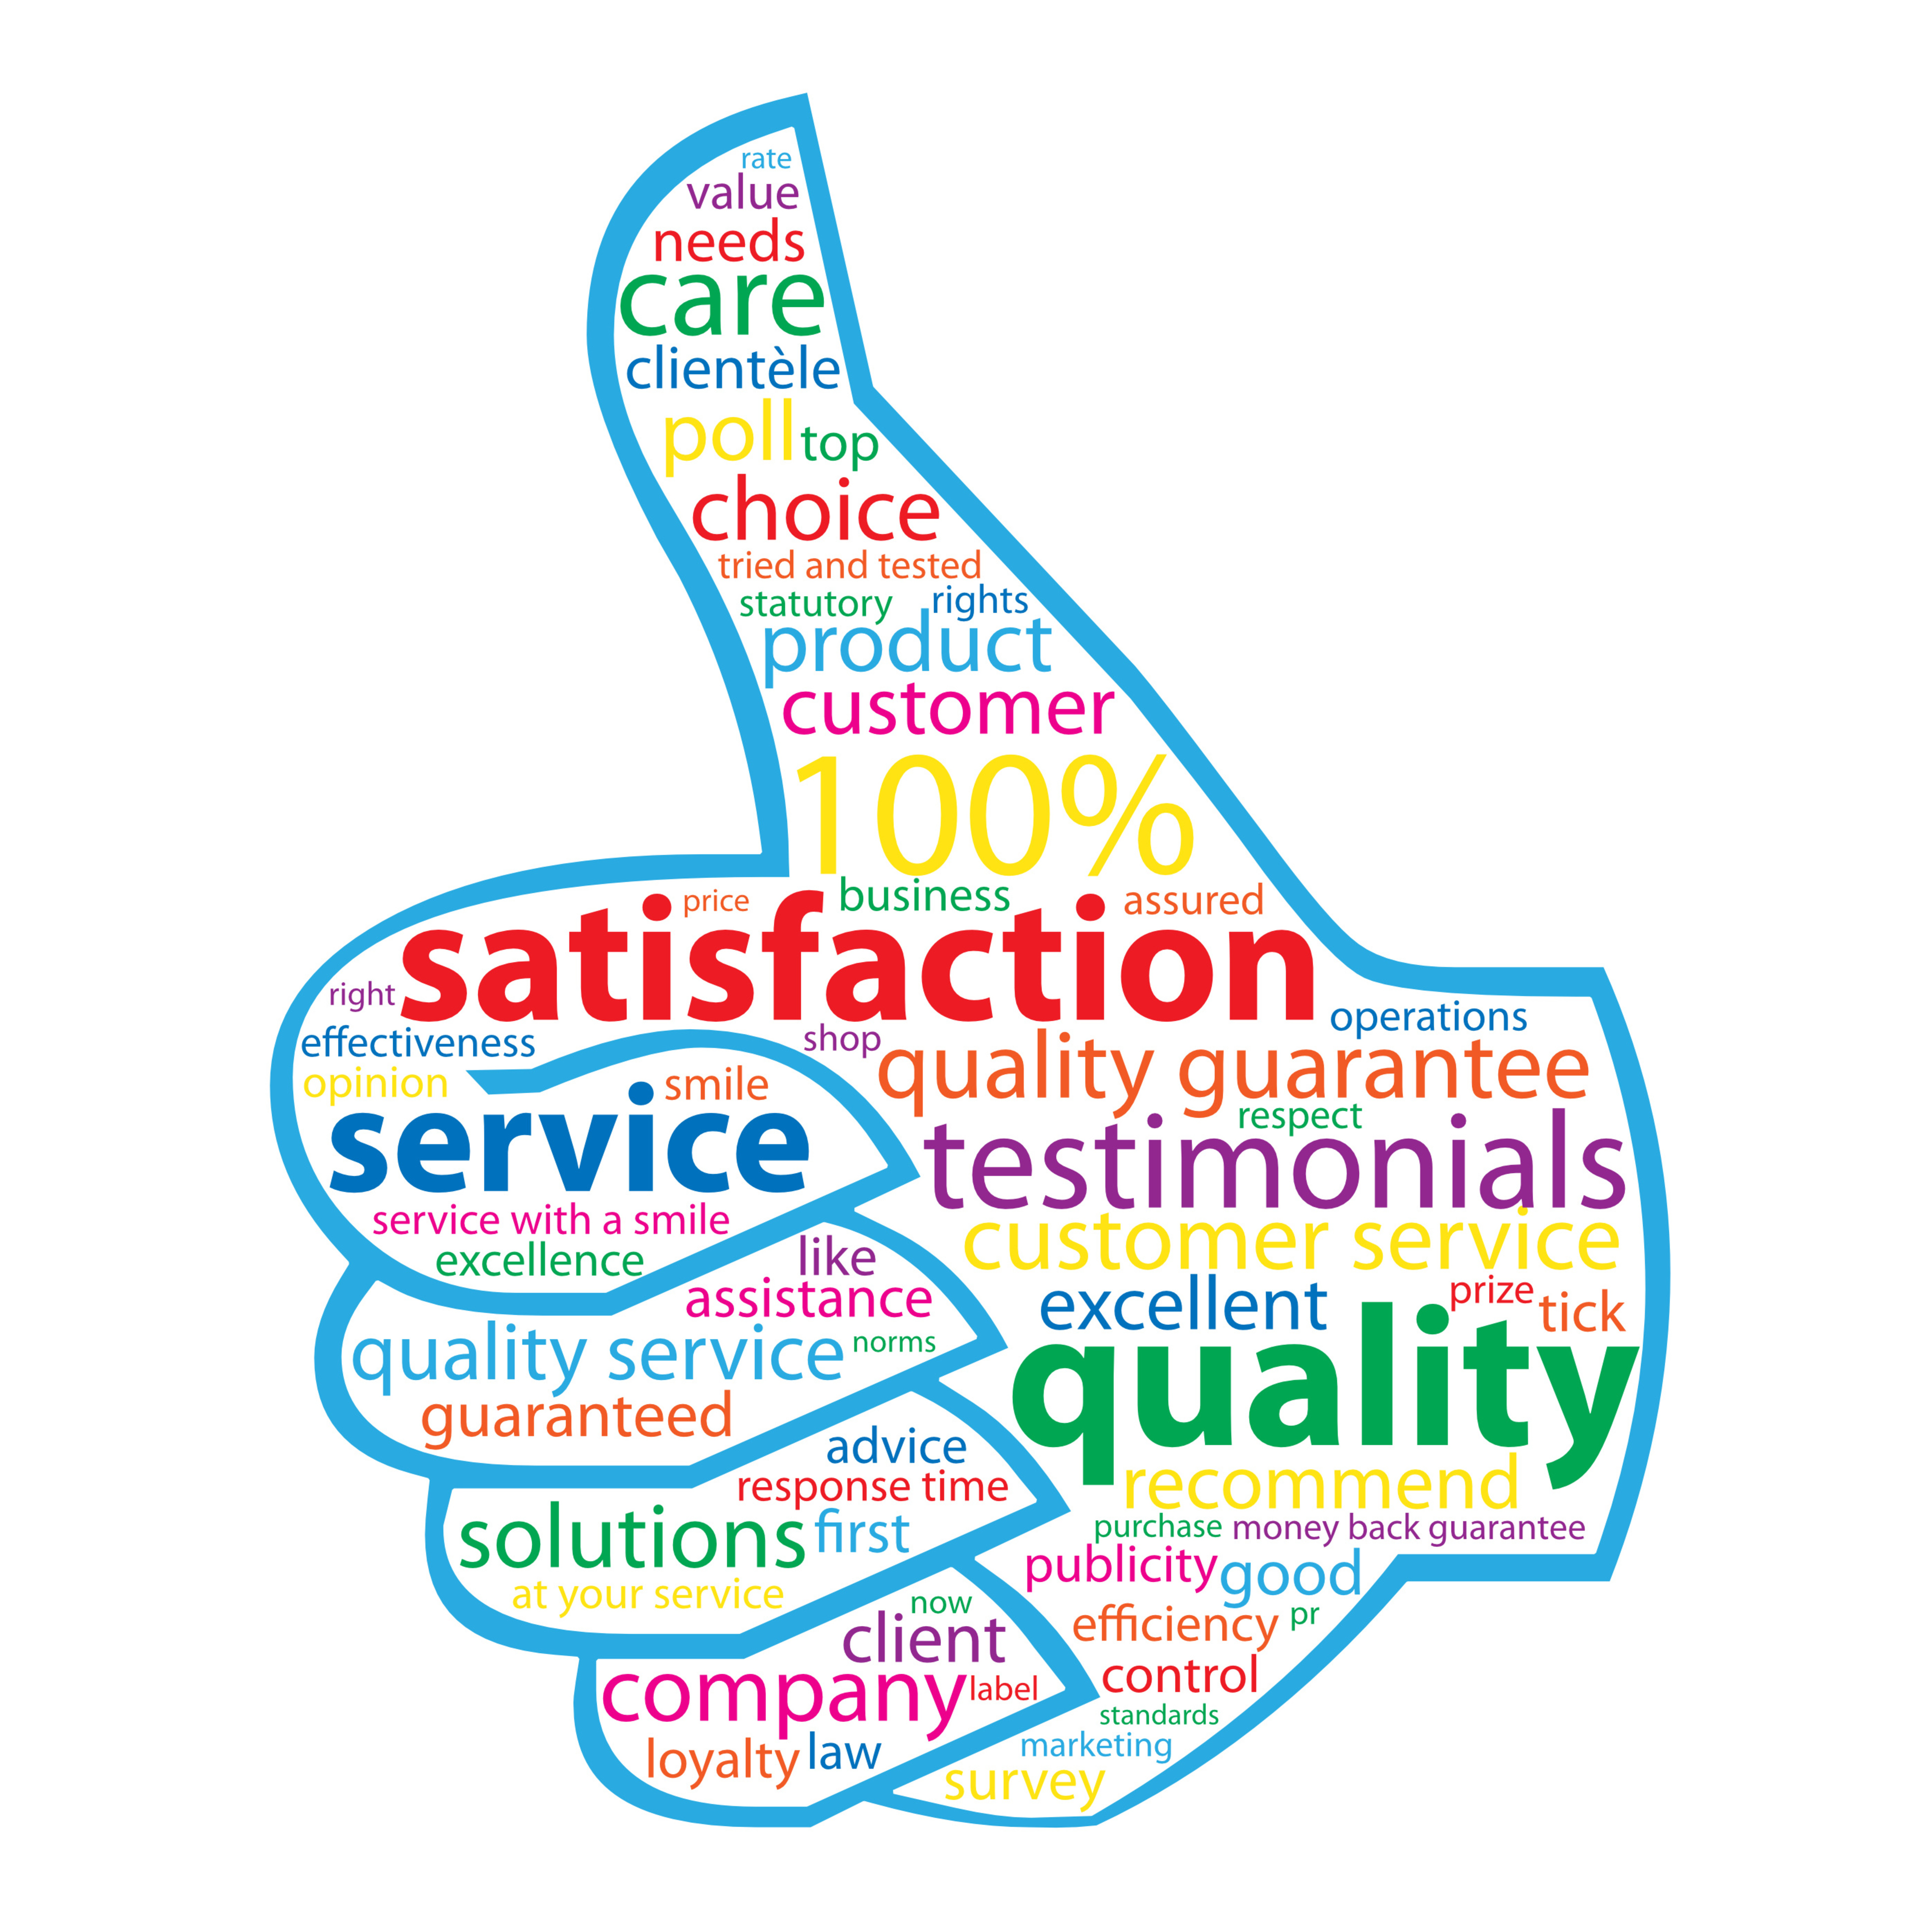 Creating value and driving customer satisfaction